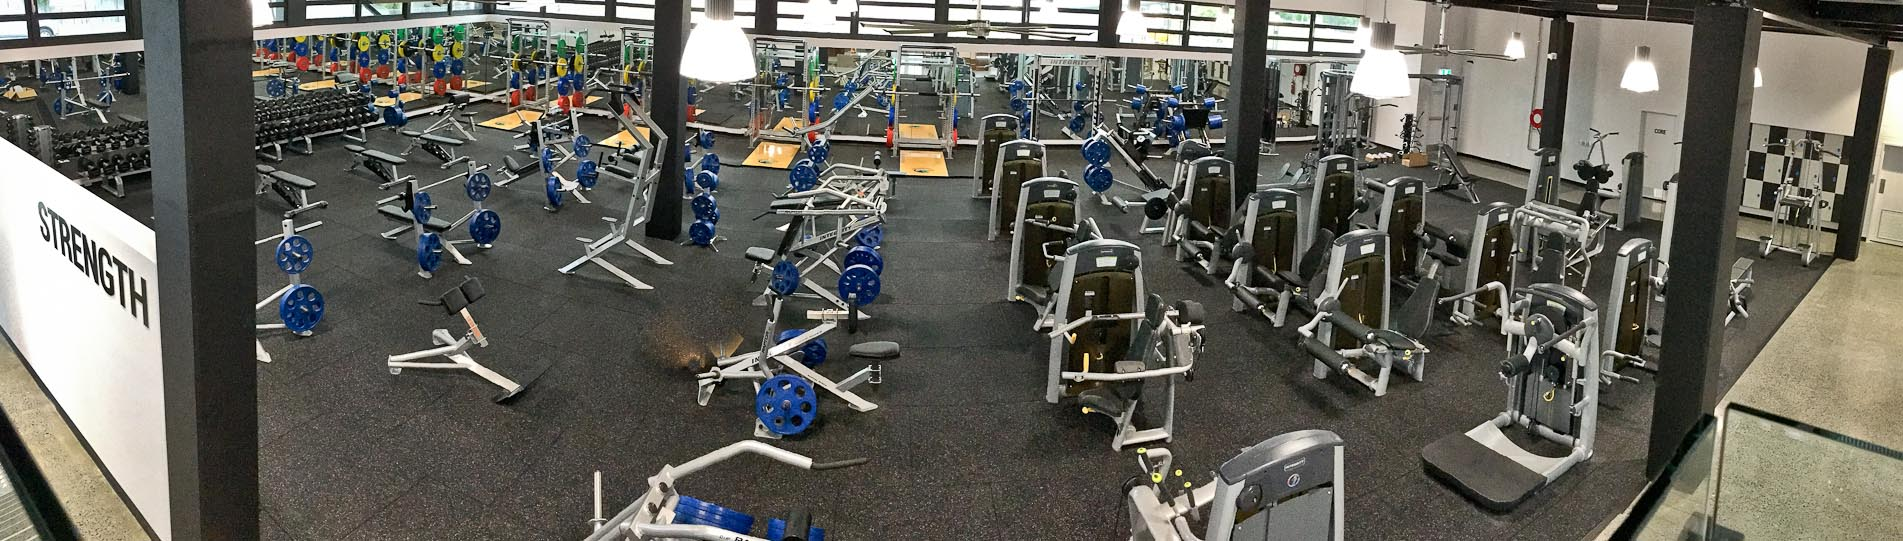 Integrity Fitness Equipment